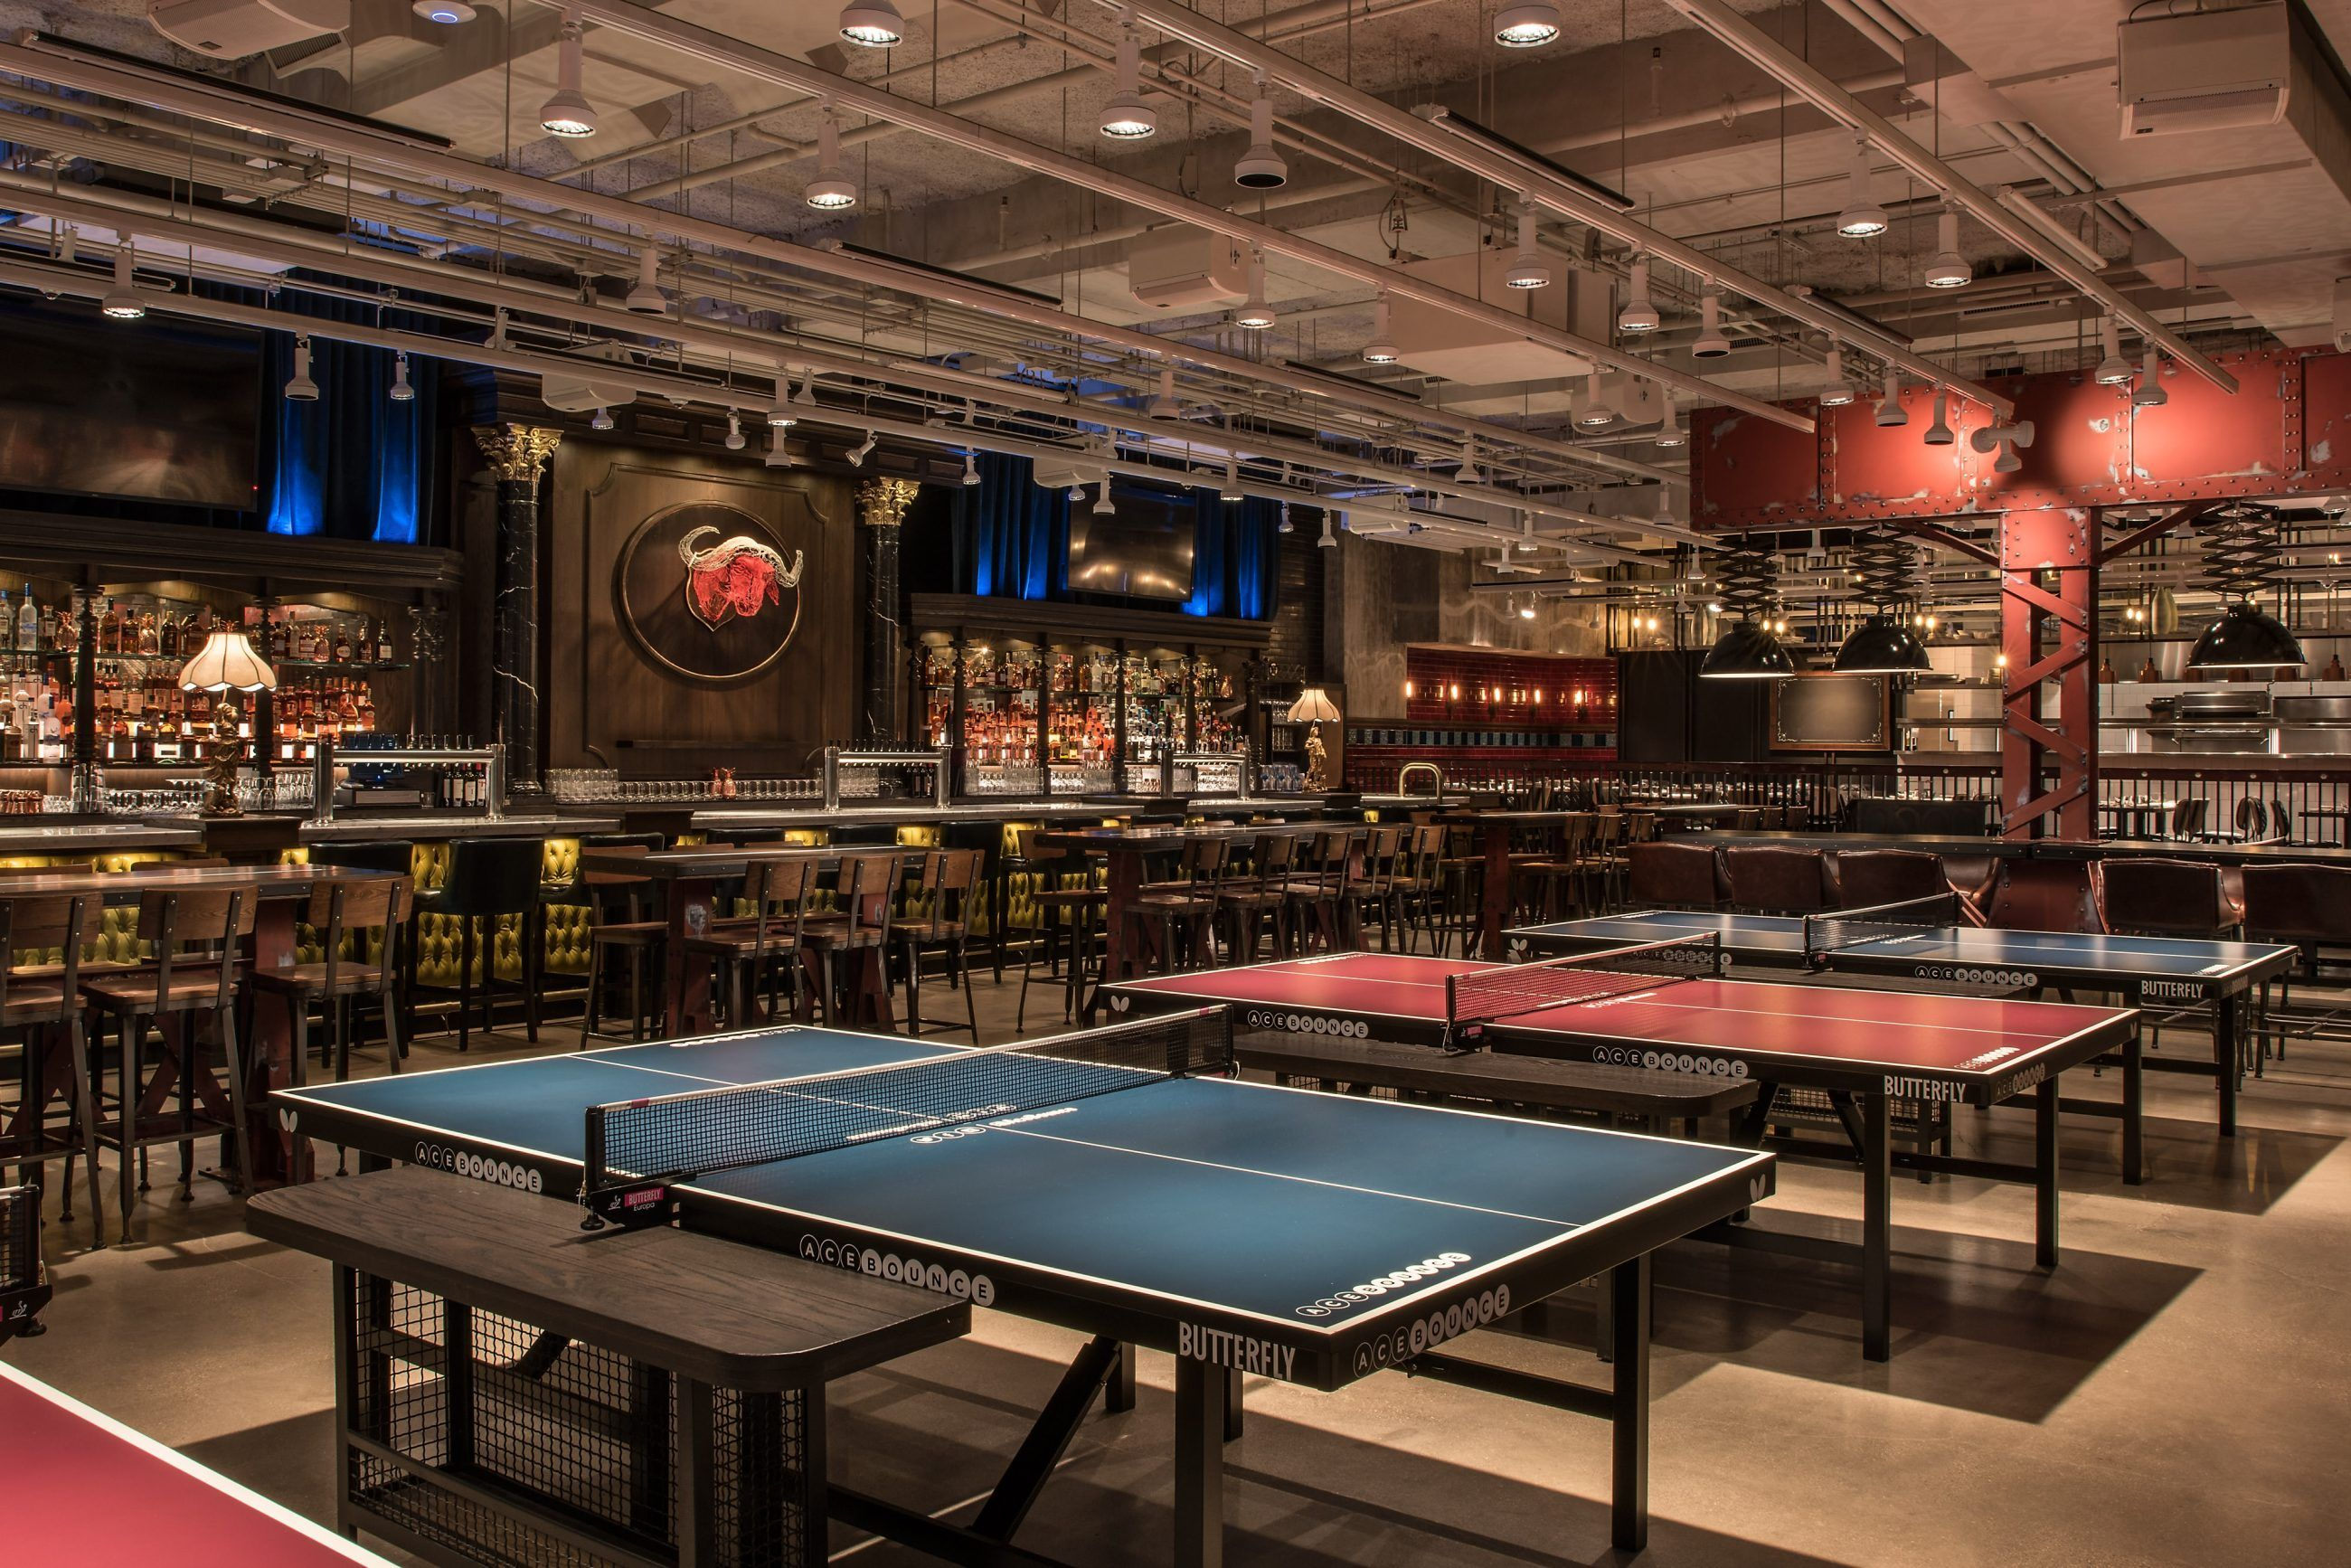 Pin By Heather Phillips On La To Do Ping Pong Spinning Standard Hotel